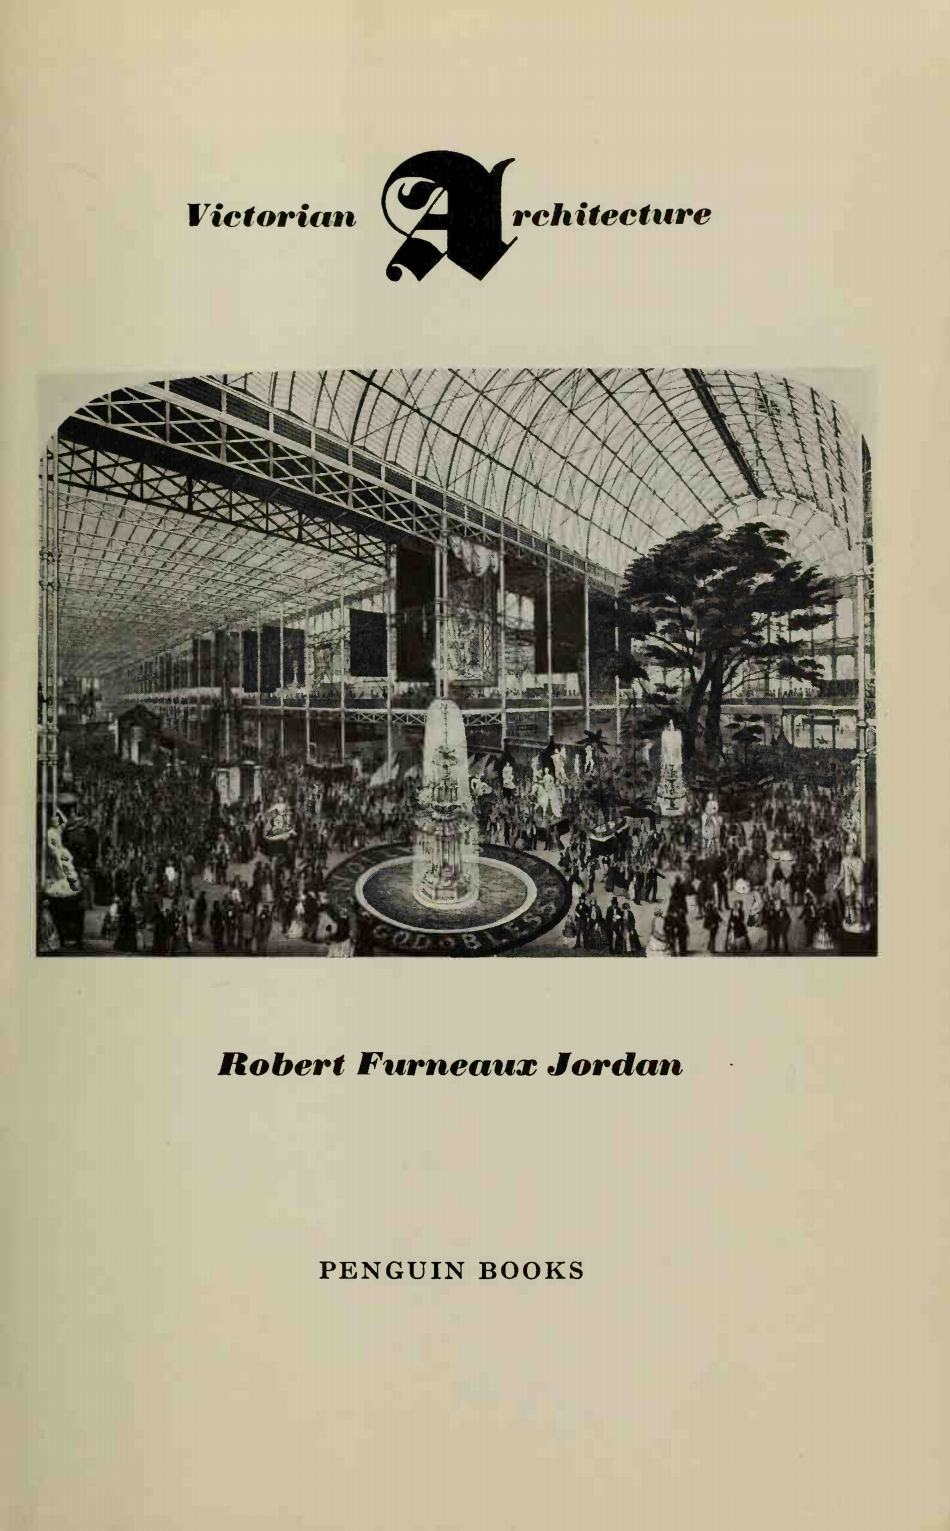 Victorian Architecture / Robert Furneaux Jordan. — Harmondsworth : Penguin Books Ltd, 1966